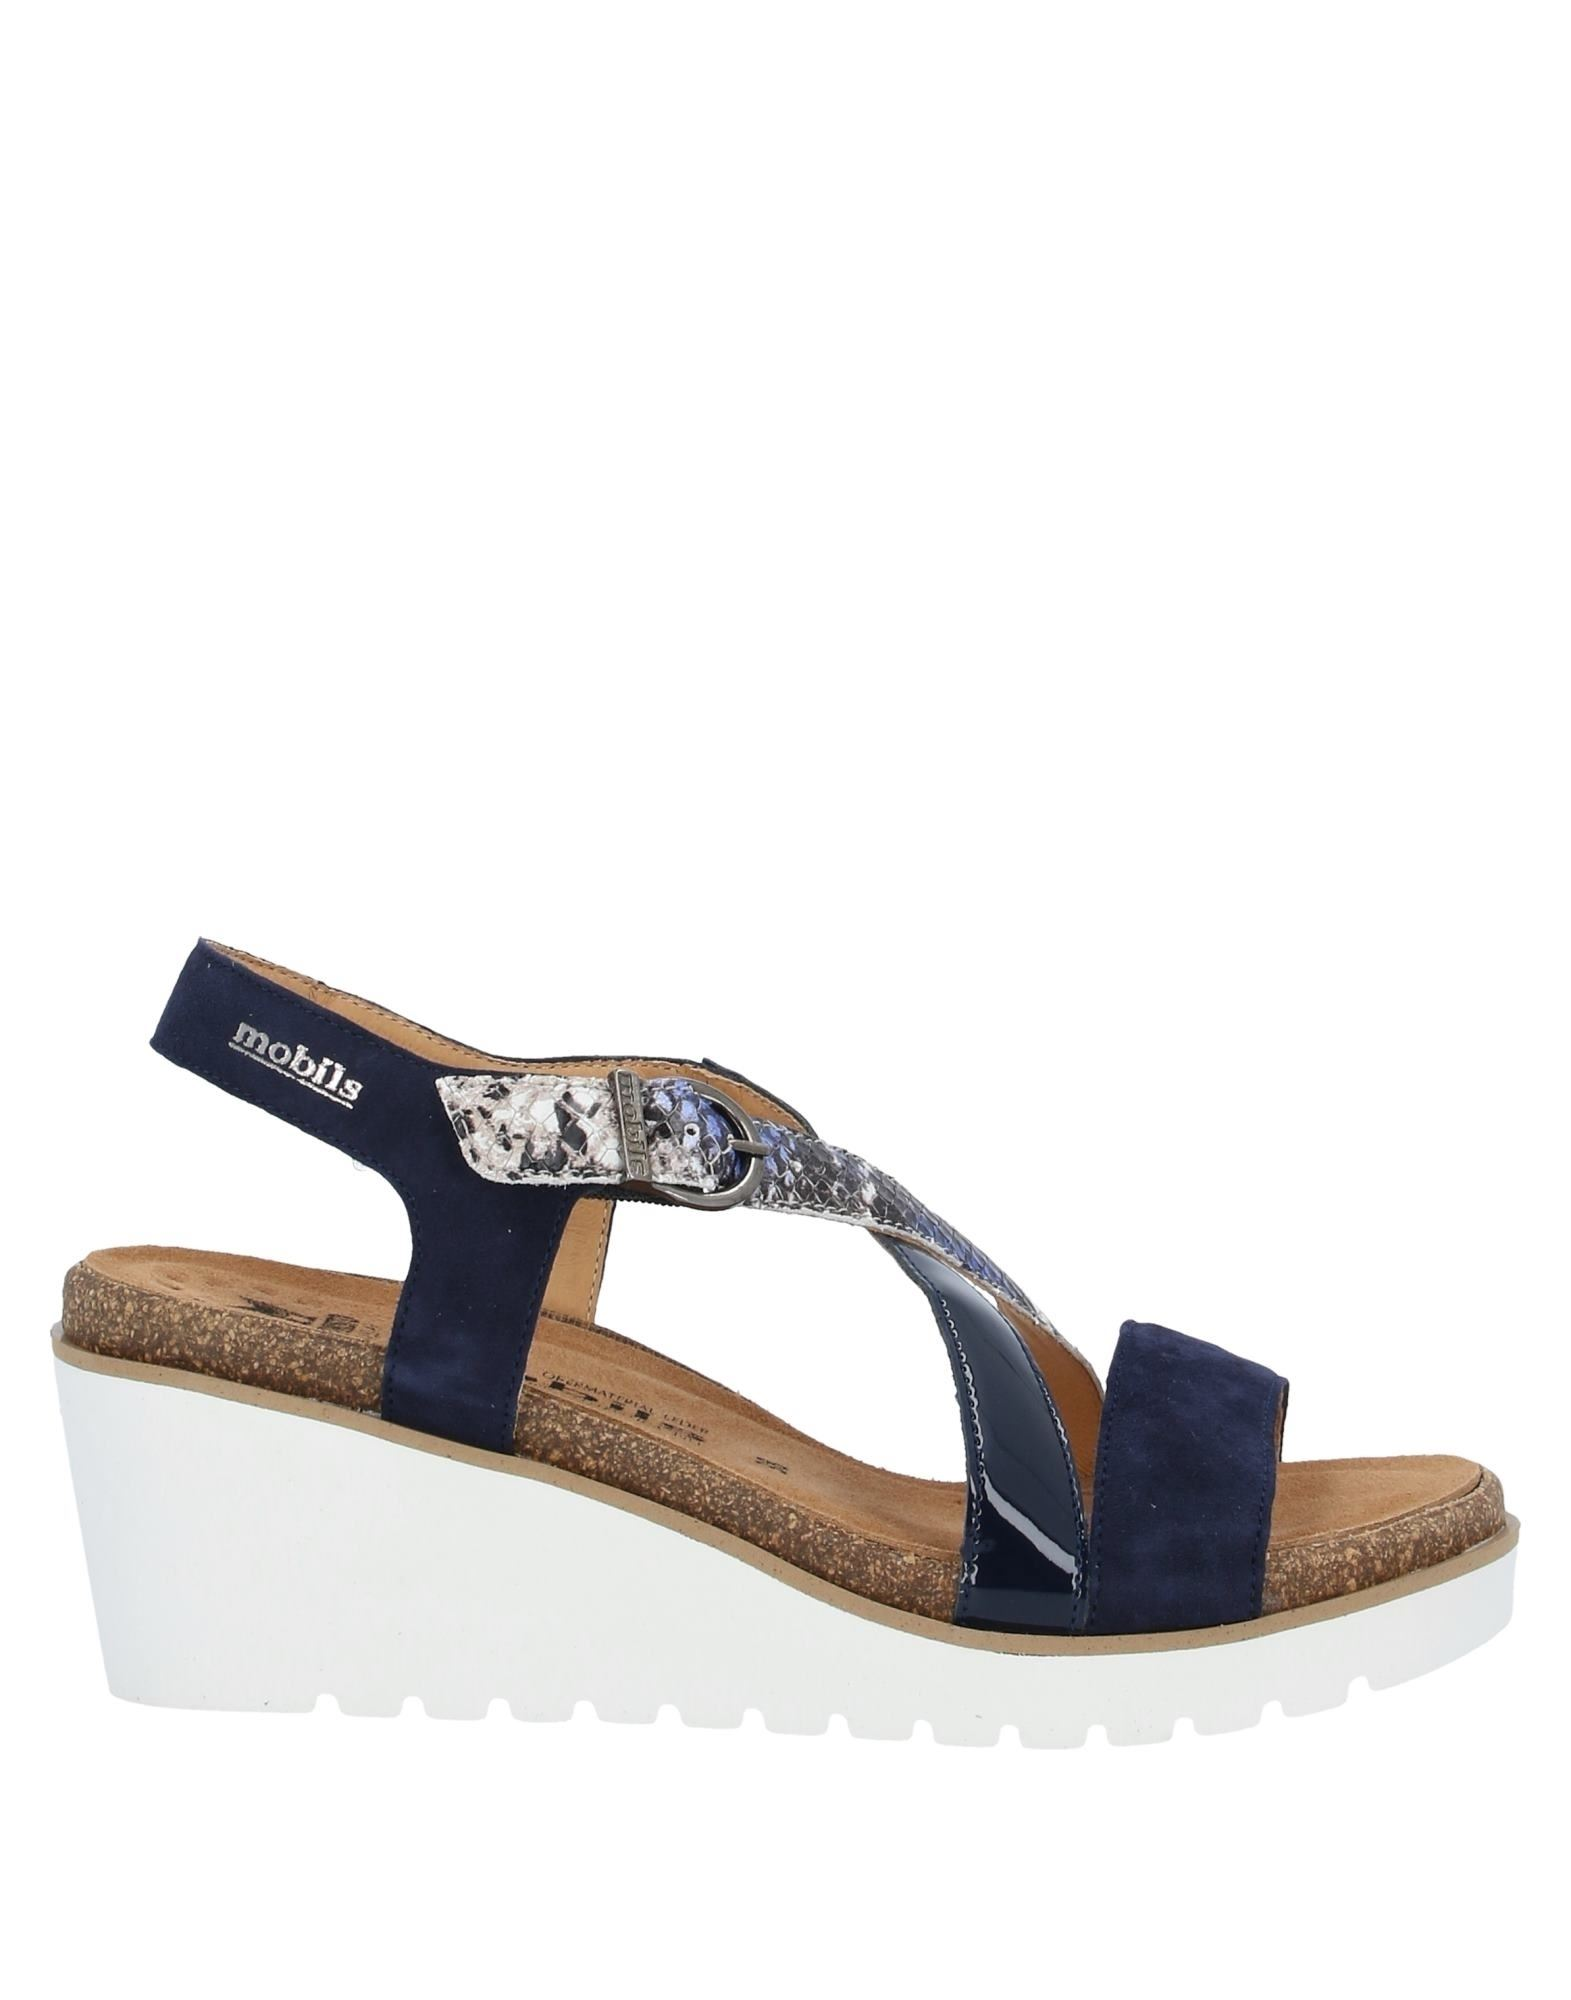 MEPHISTO Sandals. snakeskin print, suede effect, logo, solid color, buckle fastening, round toeline, wedge heel, leather lining, rubber cleated sole, contains non-textile parts of animal origin. Soft Leather